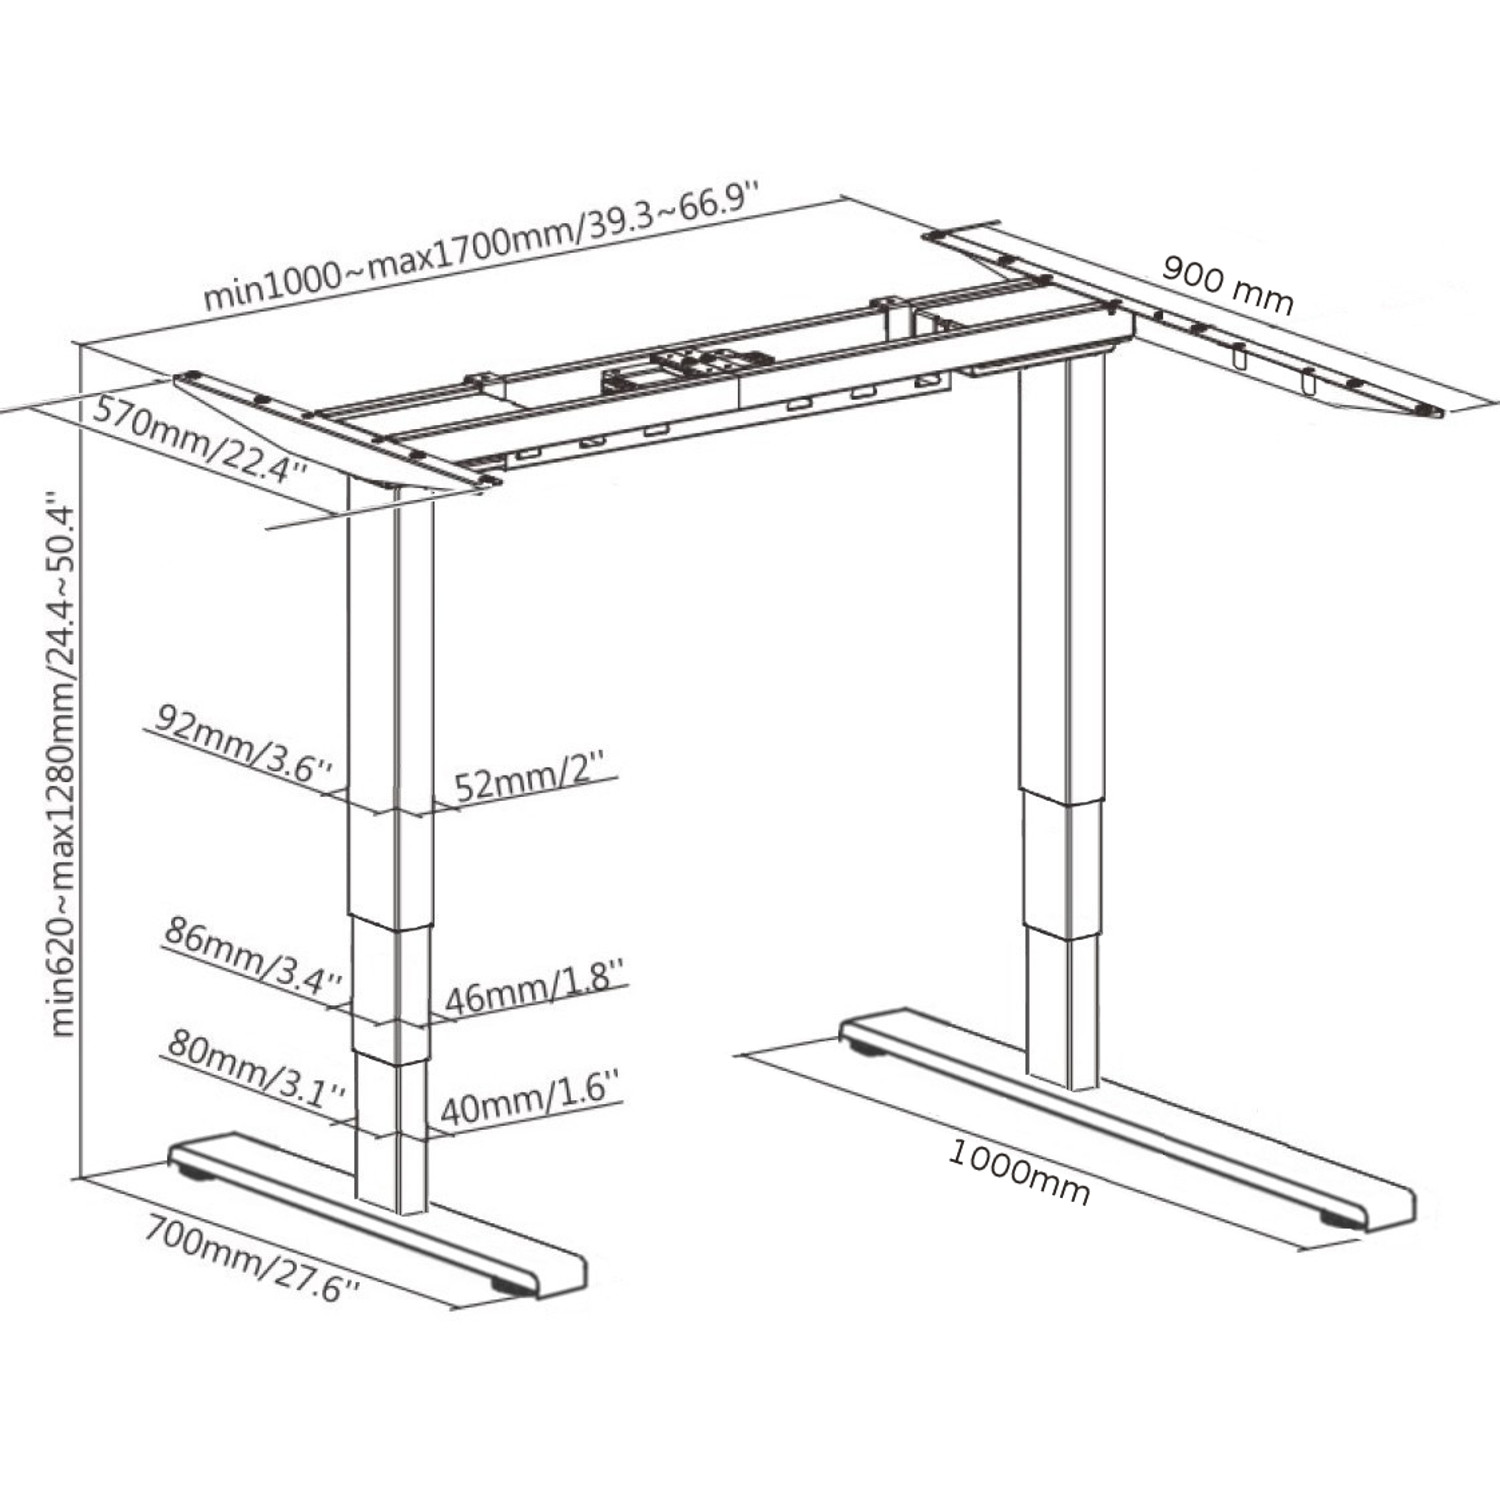 EDF12+RDK Electric Dual-motor Height-adjustable Standing Radial Desk Frame size dimensions diagram